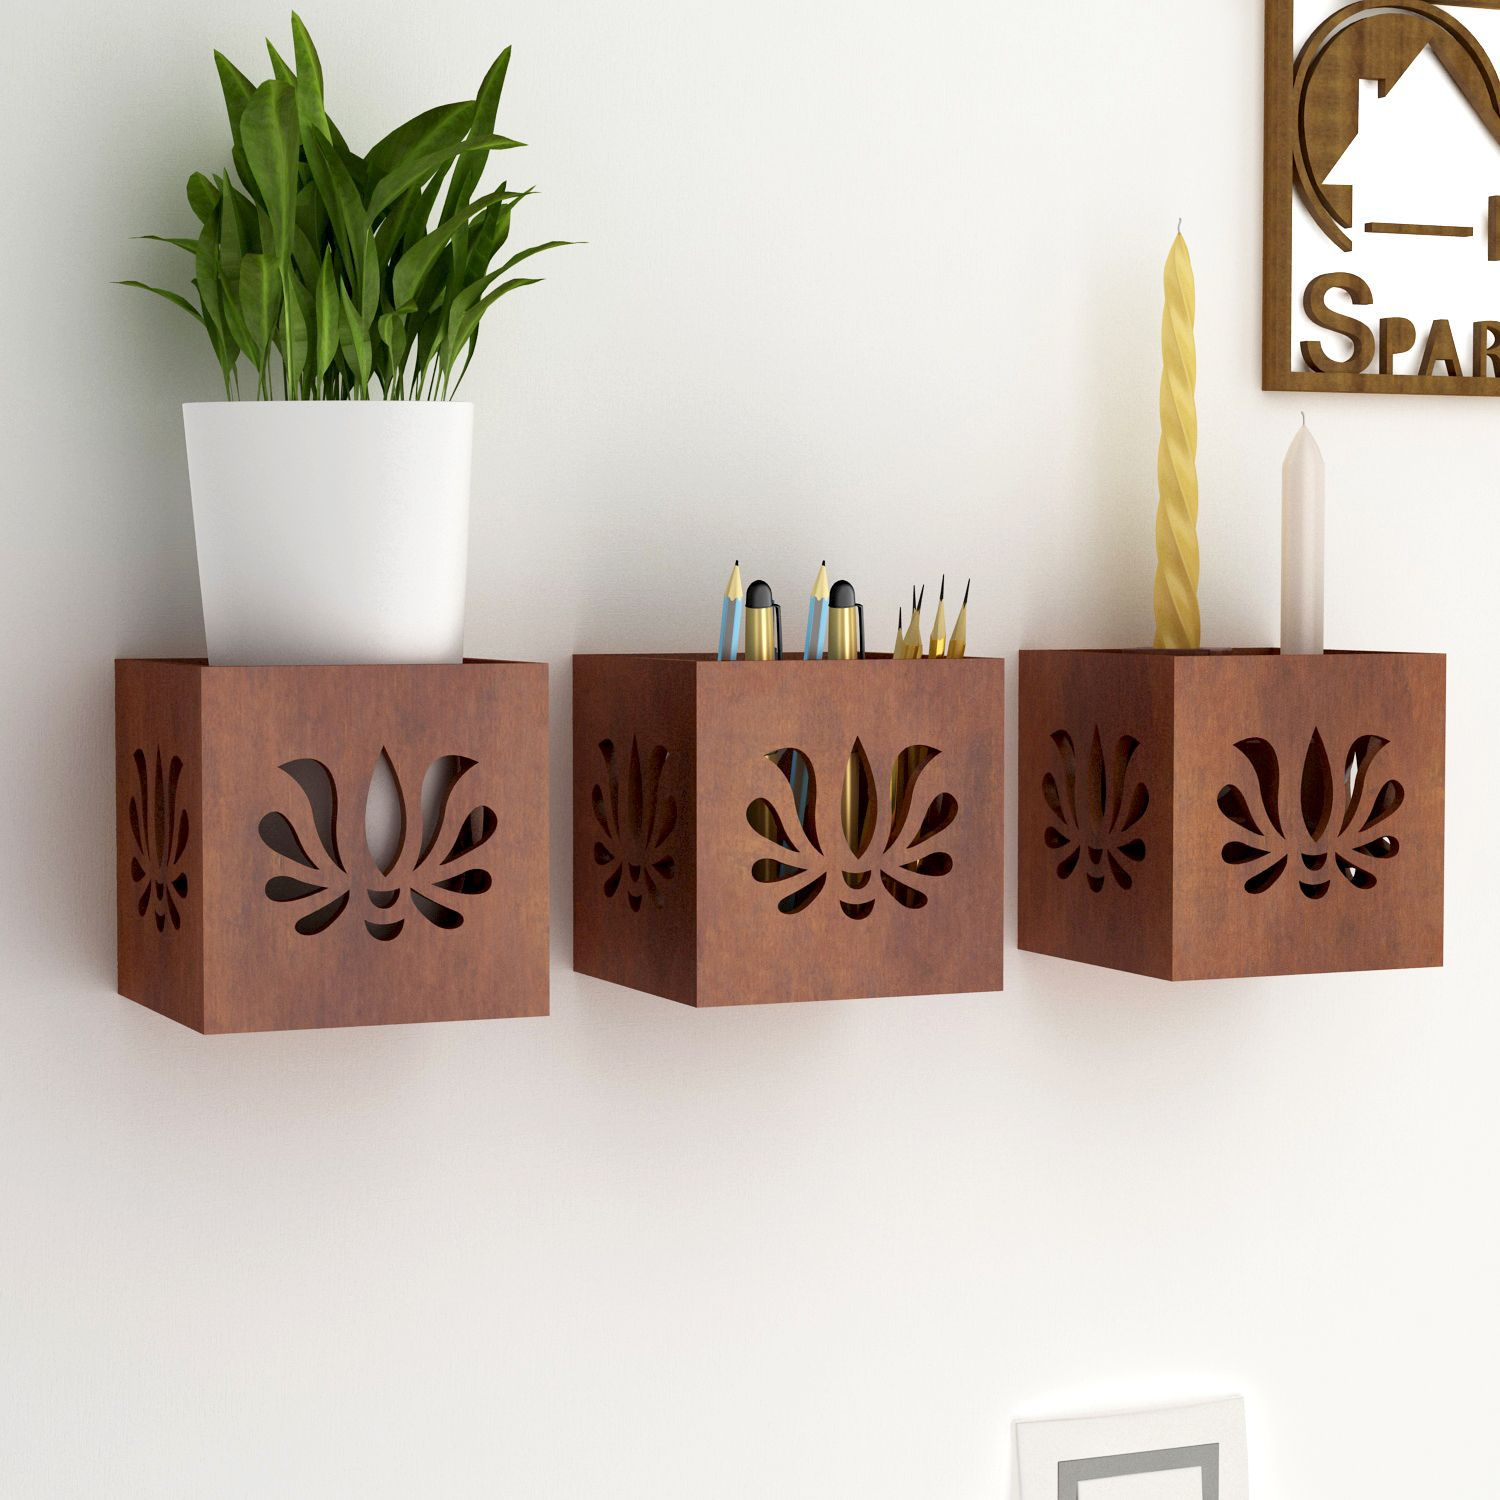 Home Sparkle MDF Set Of 3 Hanging Tea Light Cum Organizer For Wall Décor -Suitable For Living Room/Bed Room (Designed By Craftsman)